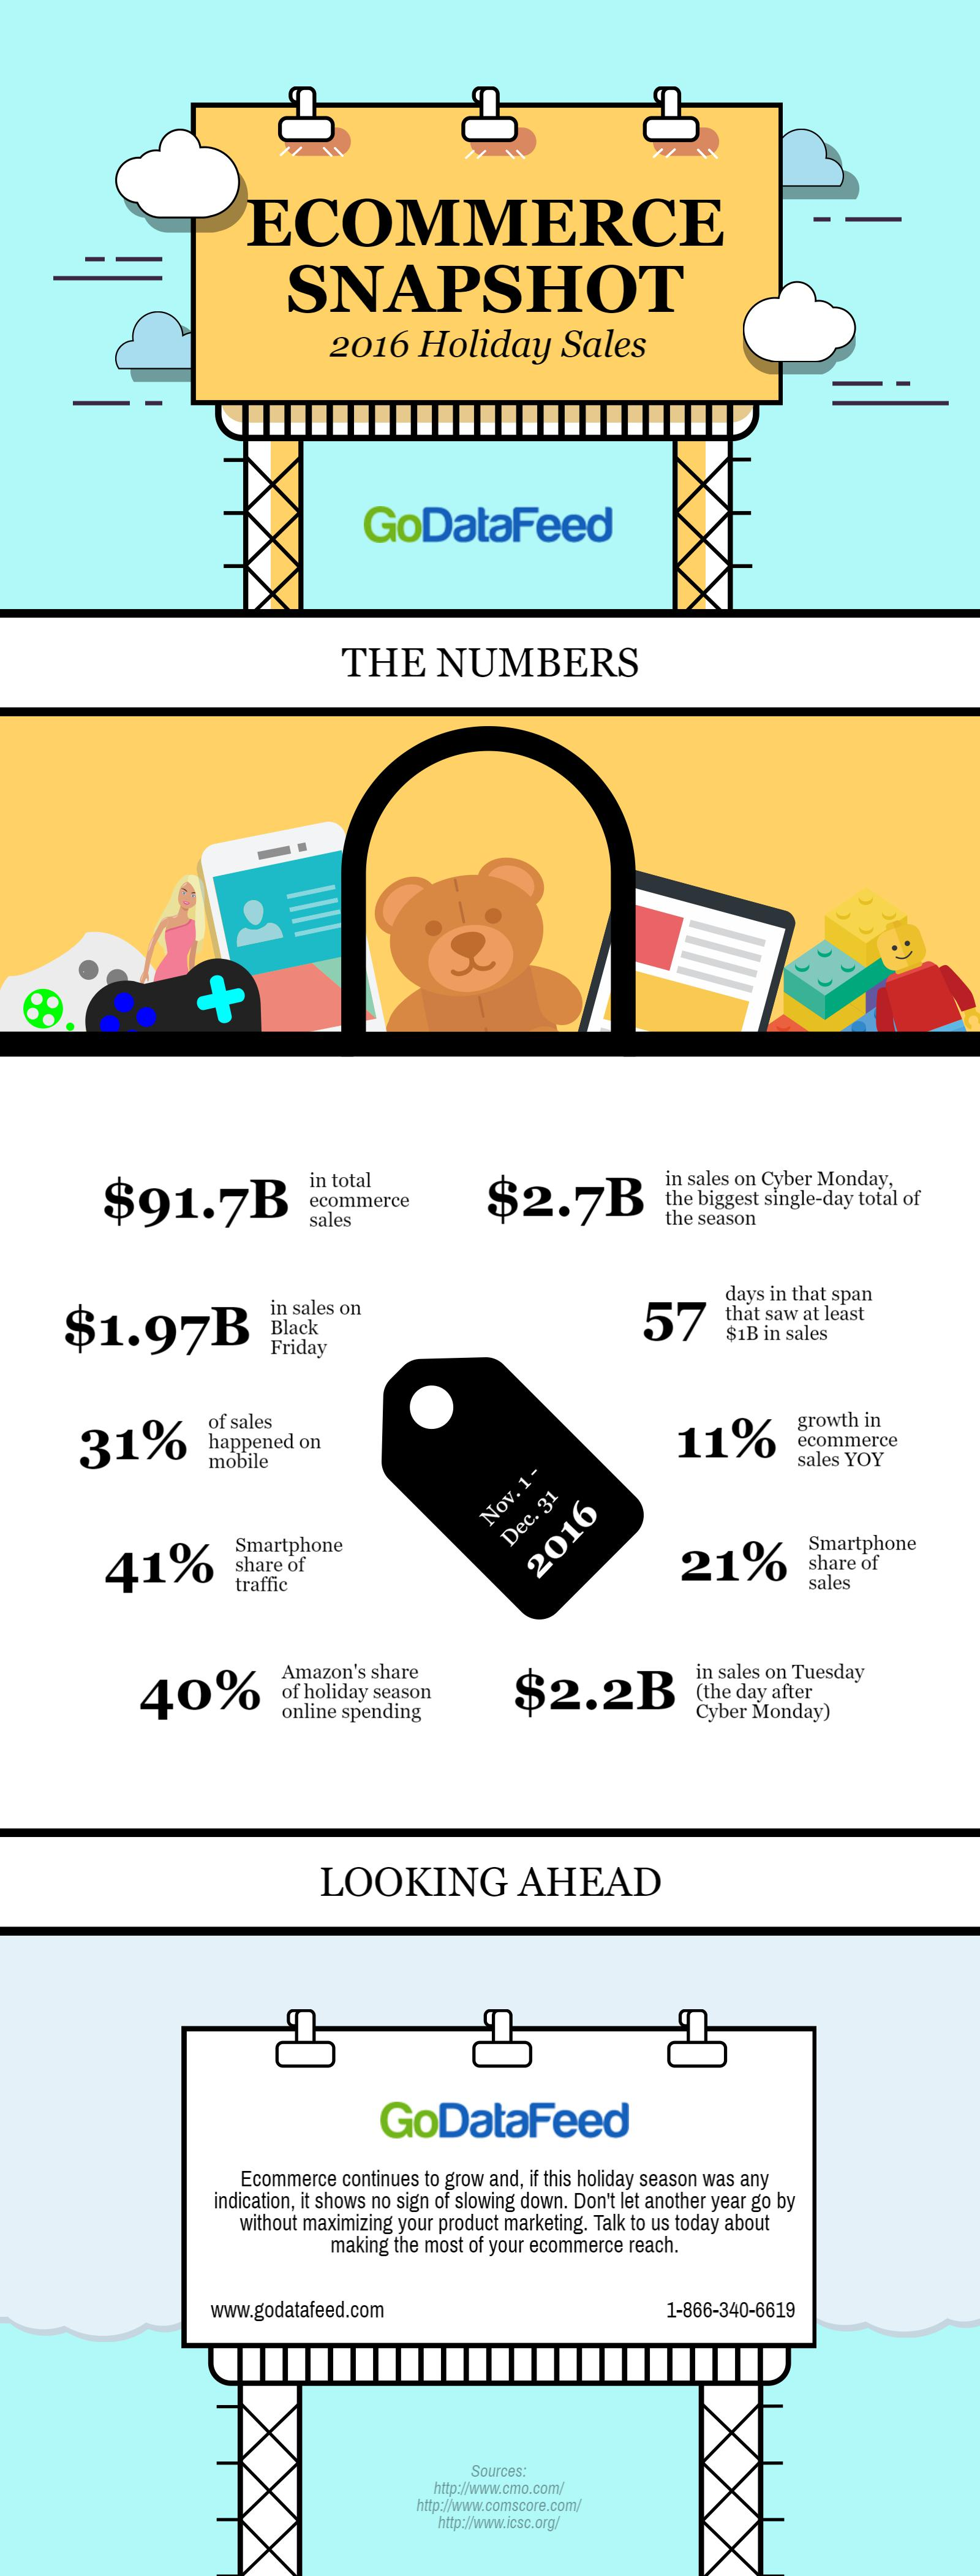 Ecommerce Holiday Sales 2016 - Infographic